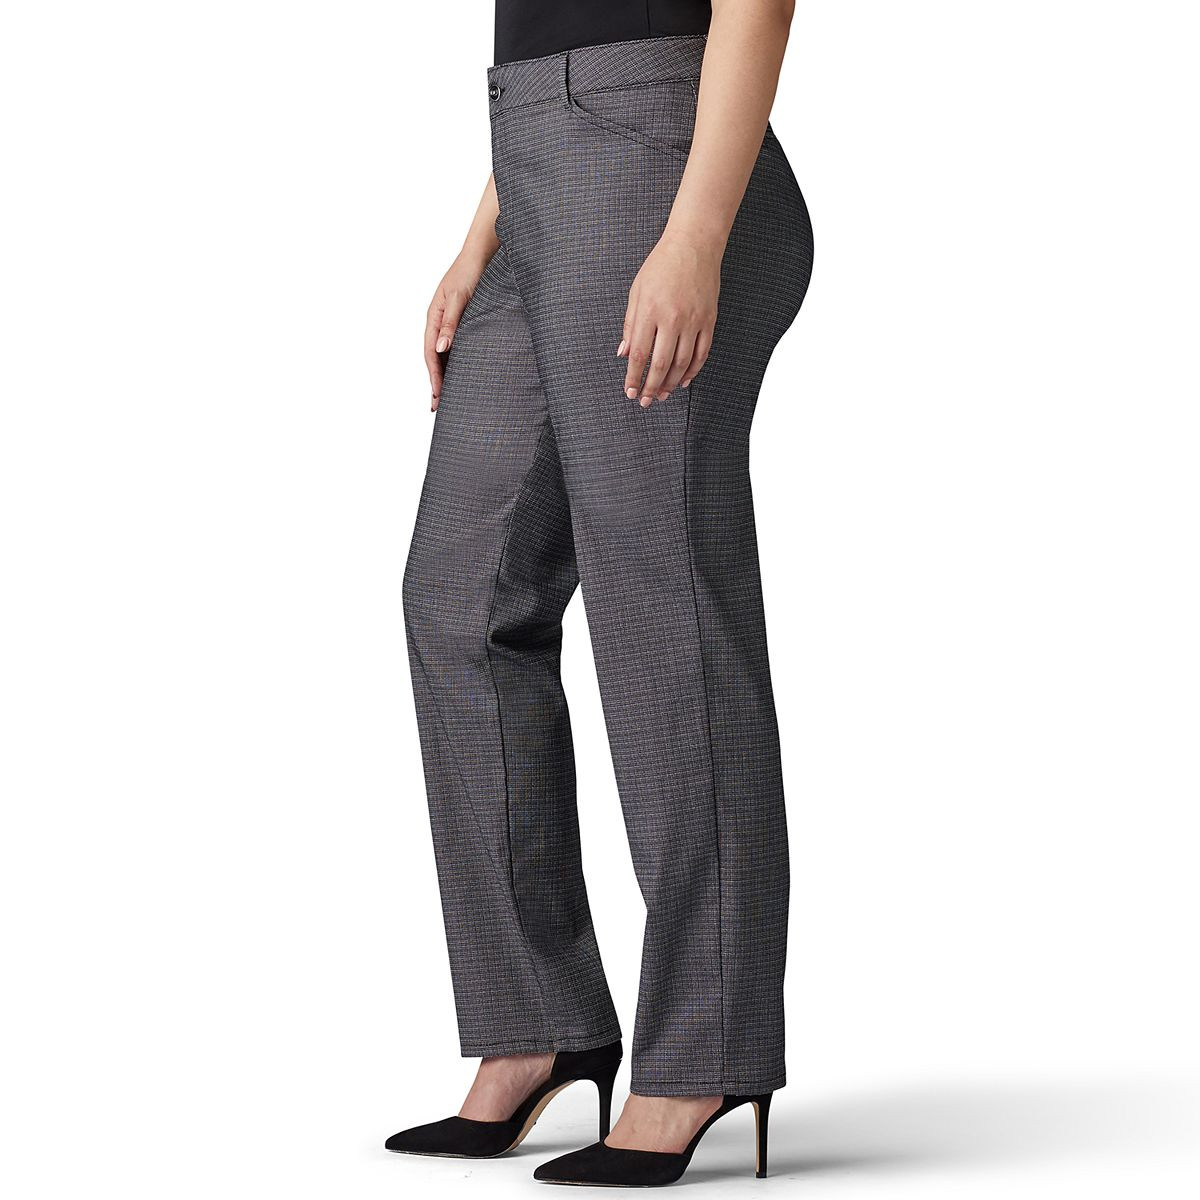 Plus Size Lee® Relaxed Fit Straight-Leg Pants Black EarWS